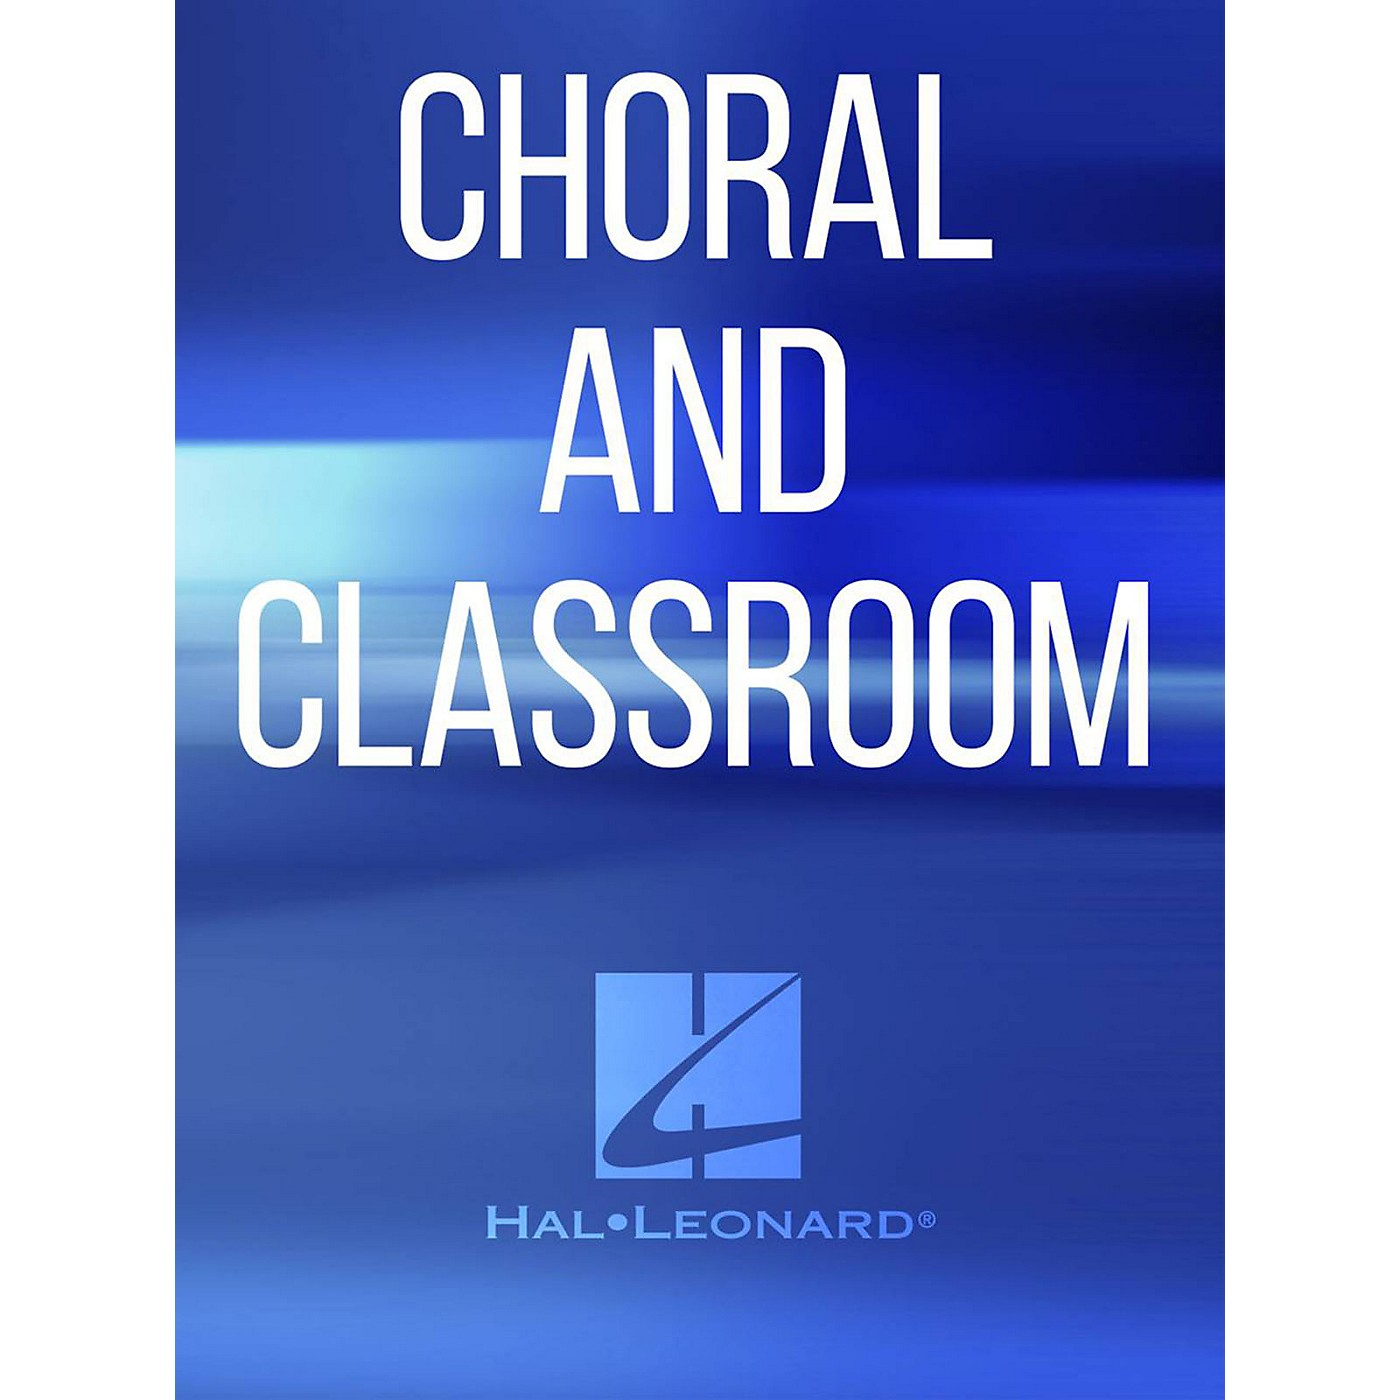 Hal Leonard My Gentle Harp Composed by William Hall thumbnail